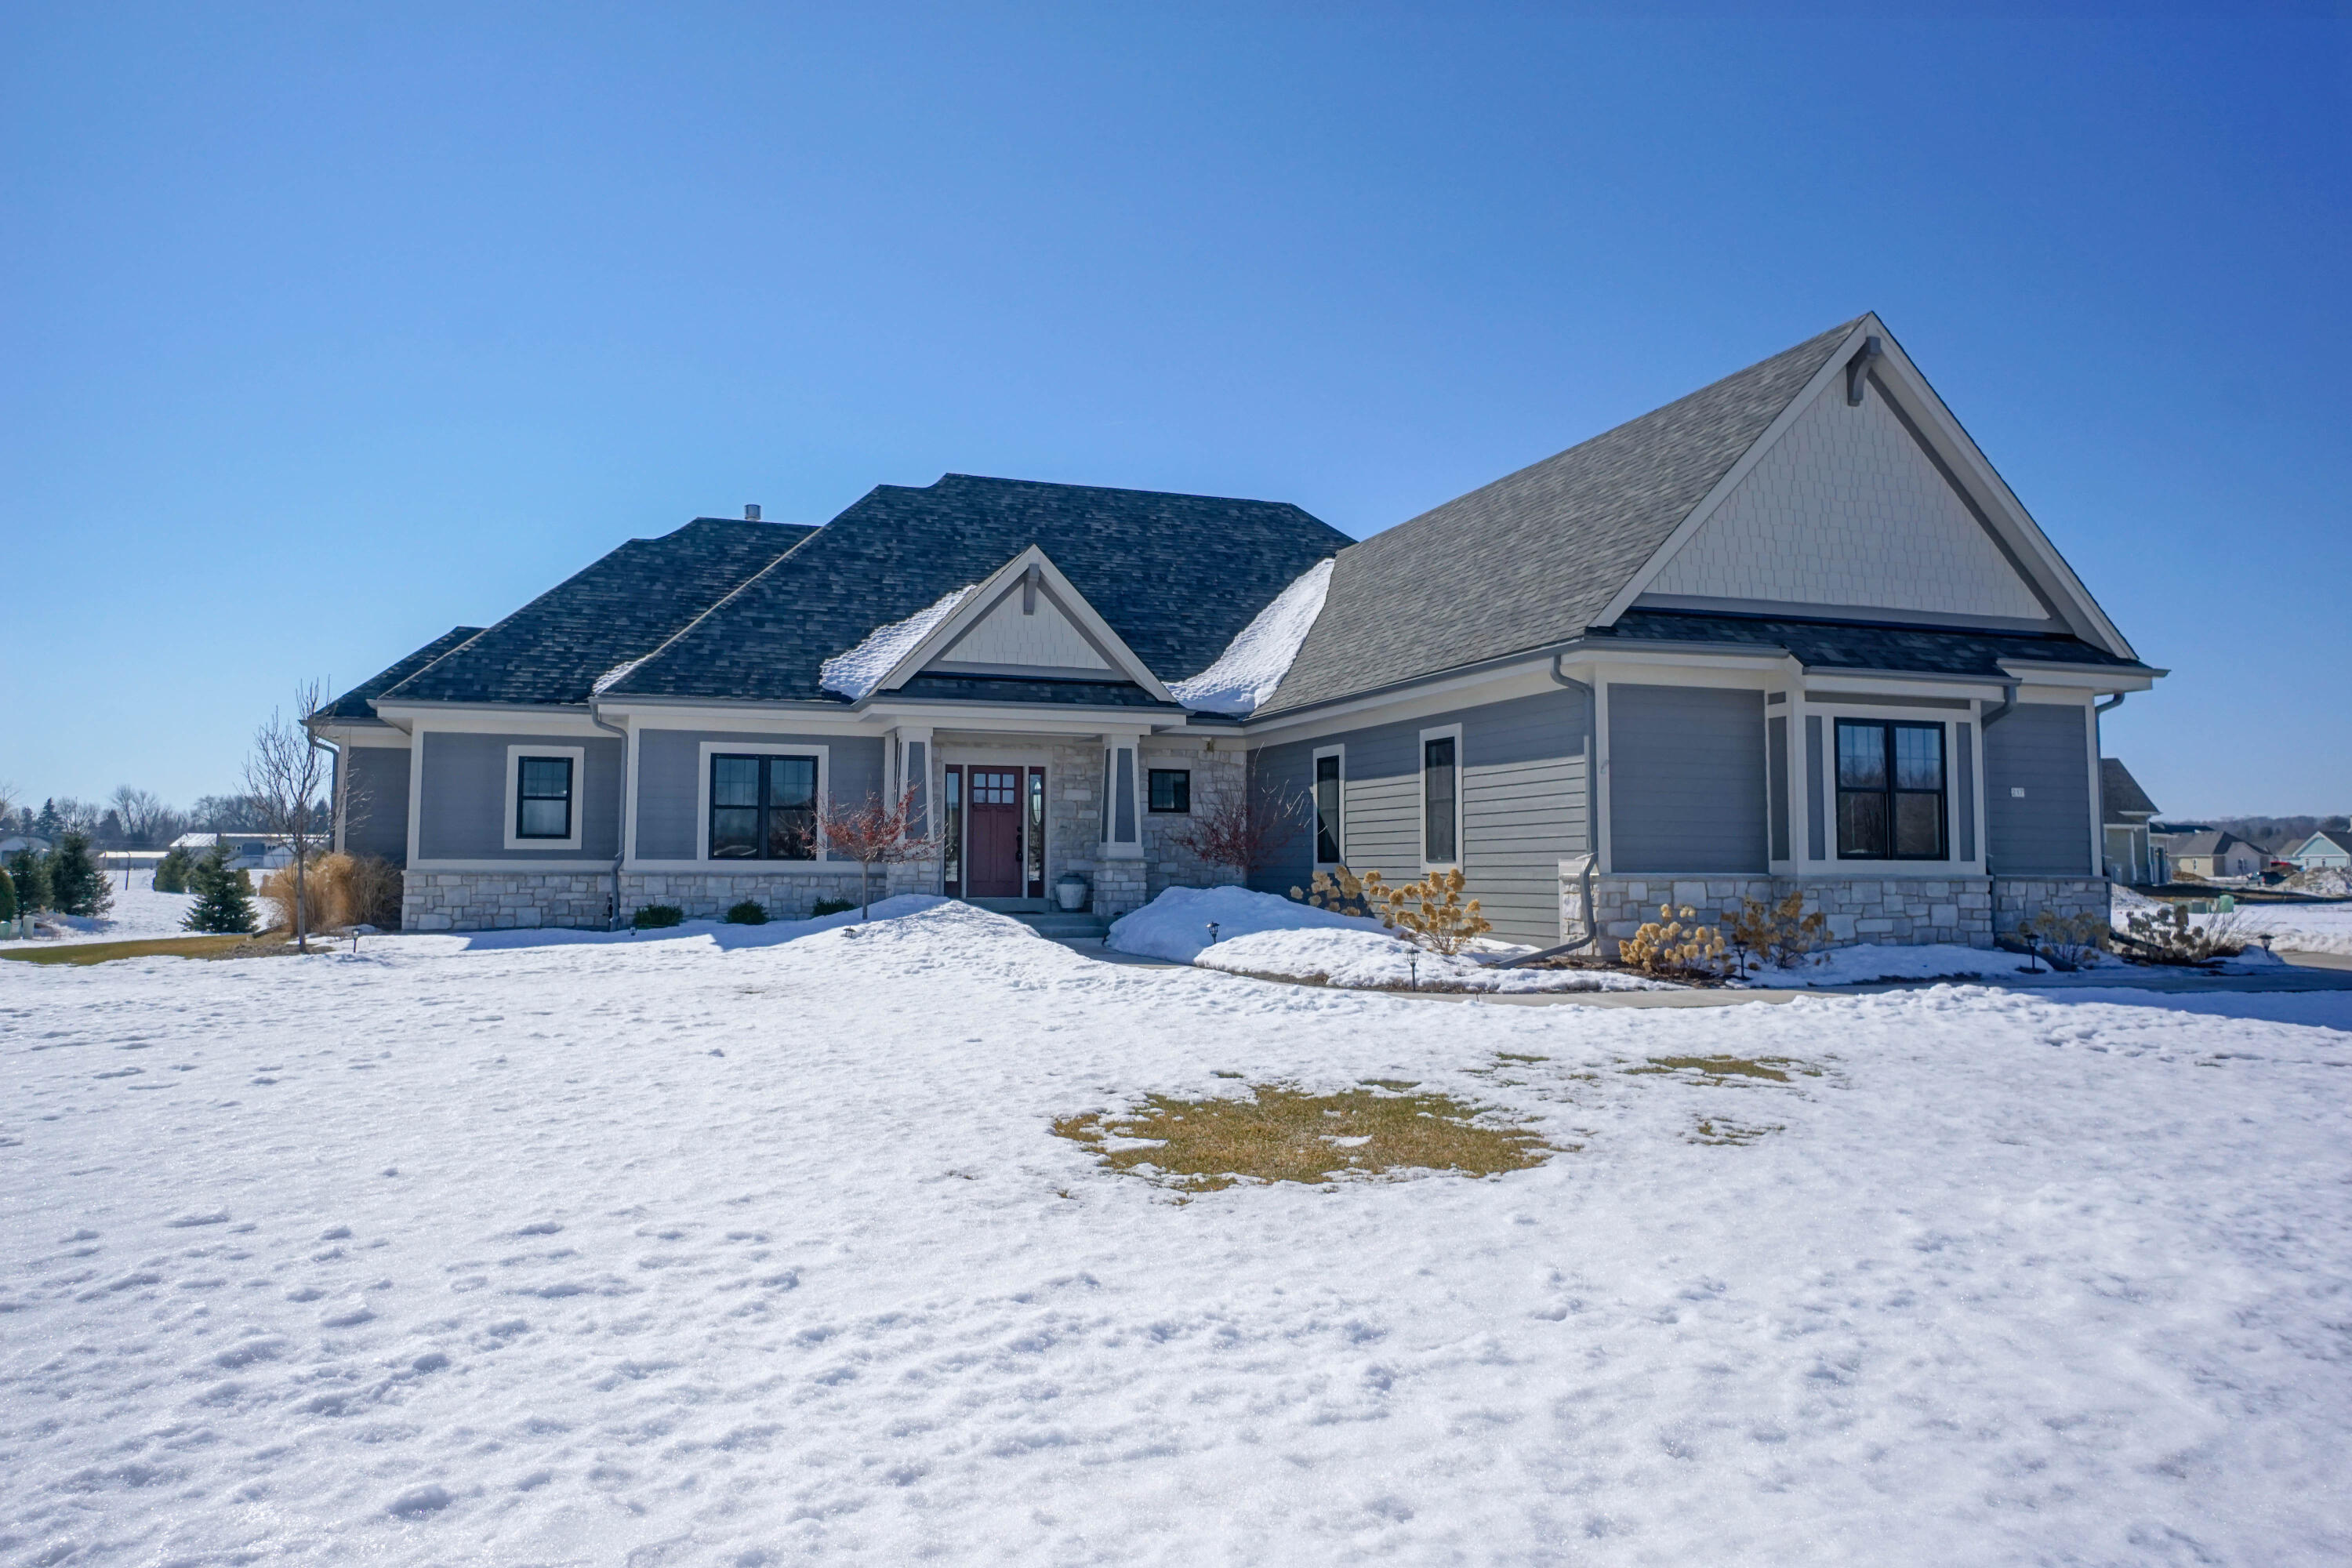 217 Four Winds Ct, Hartland, Wisconsin 53029, 4 Bedrooms Bedrooms, 12 Rooms Rooms,3 BathroomsBathrooms,Single-Family,For Sale,Four Winds Ct,1729063